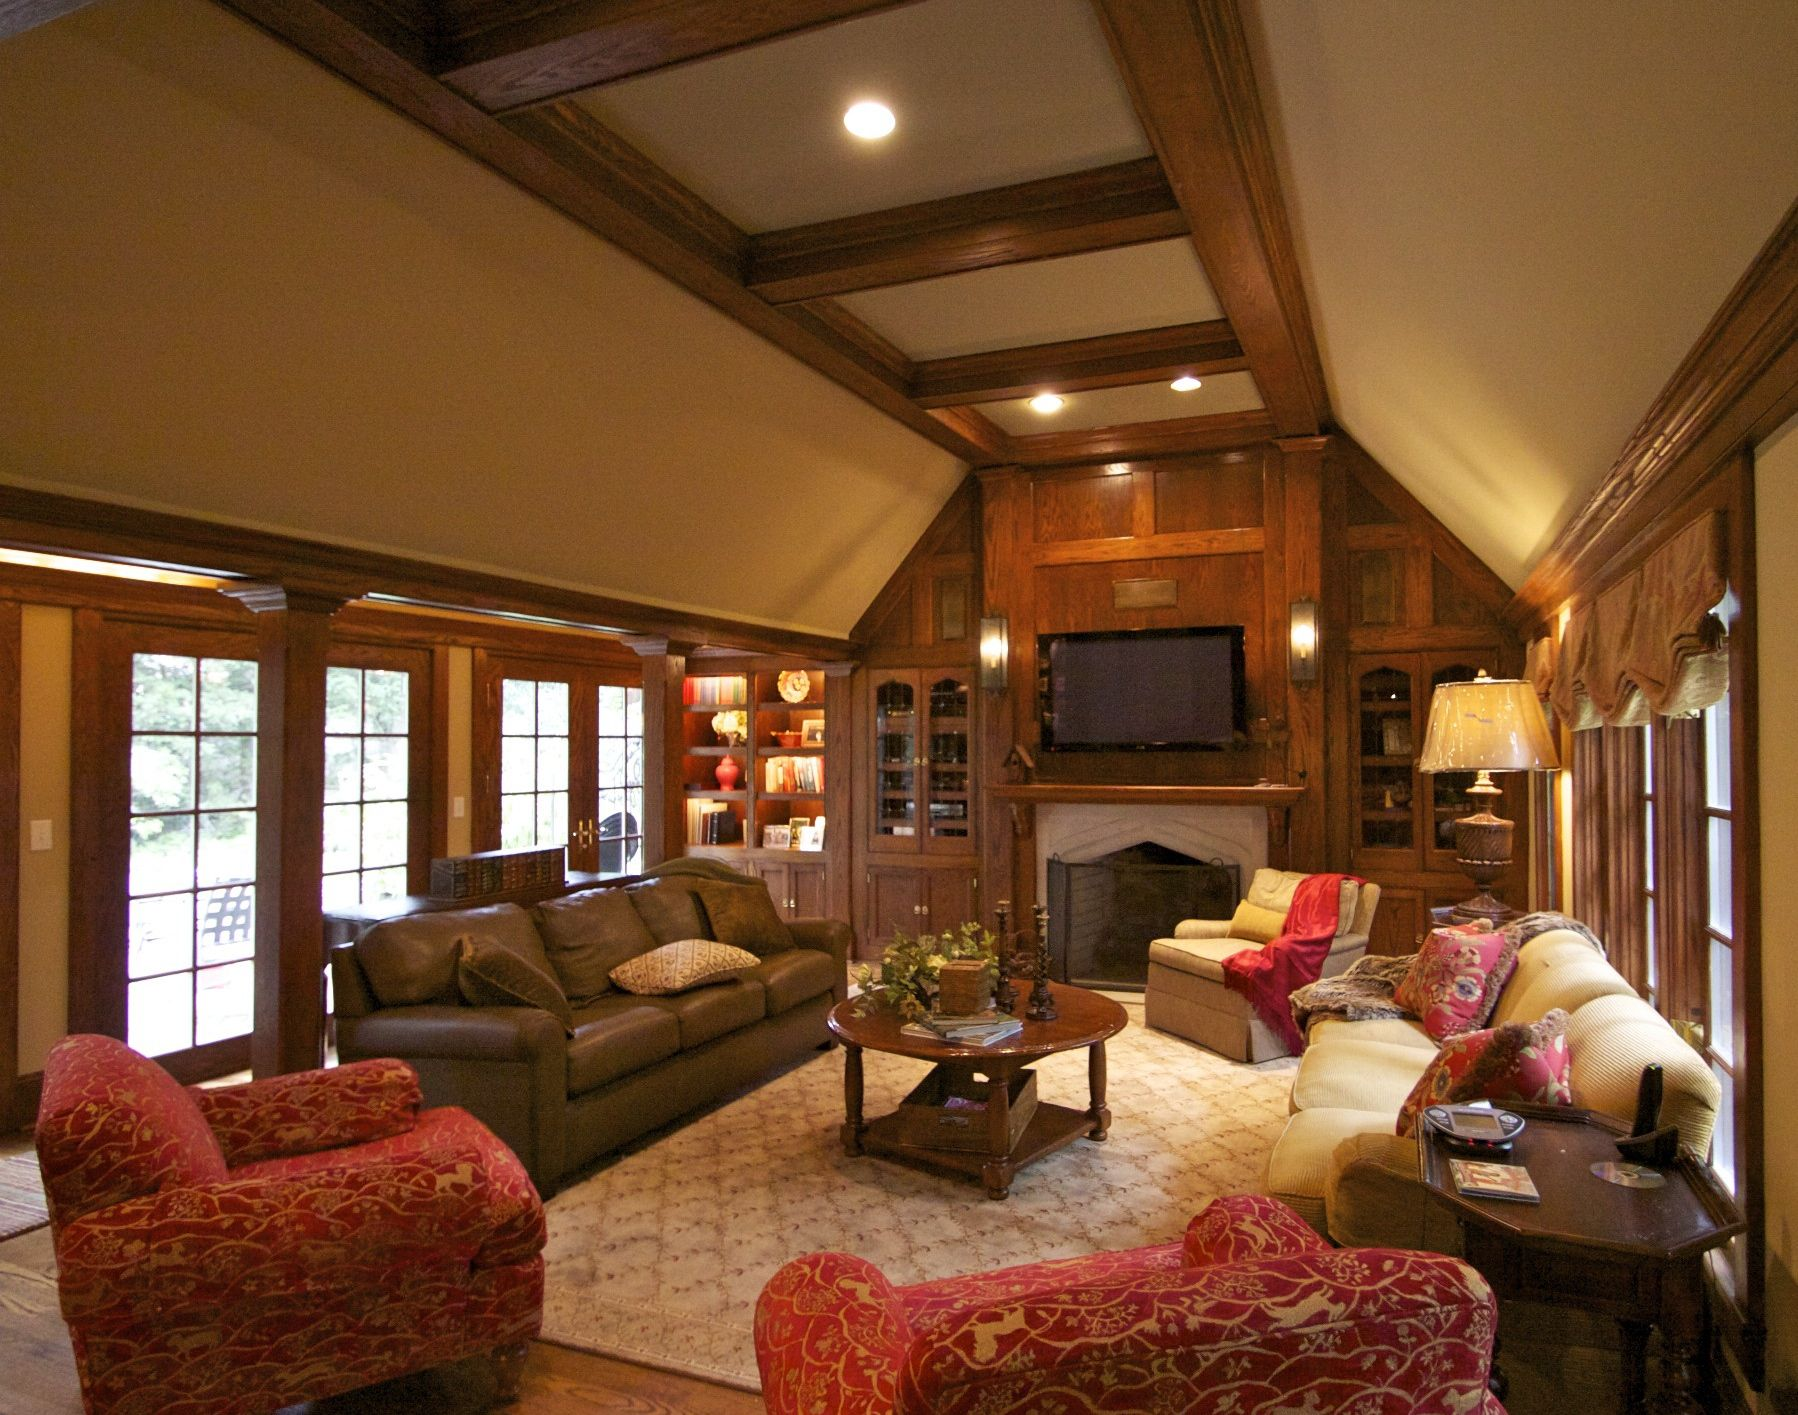 Tudor Interior Design if we wanted to get away from the brick | bostonian billiardroom